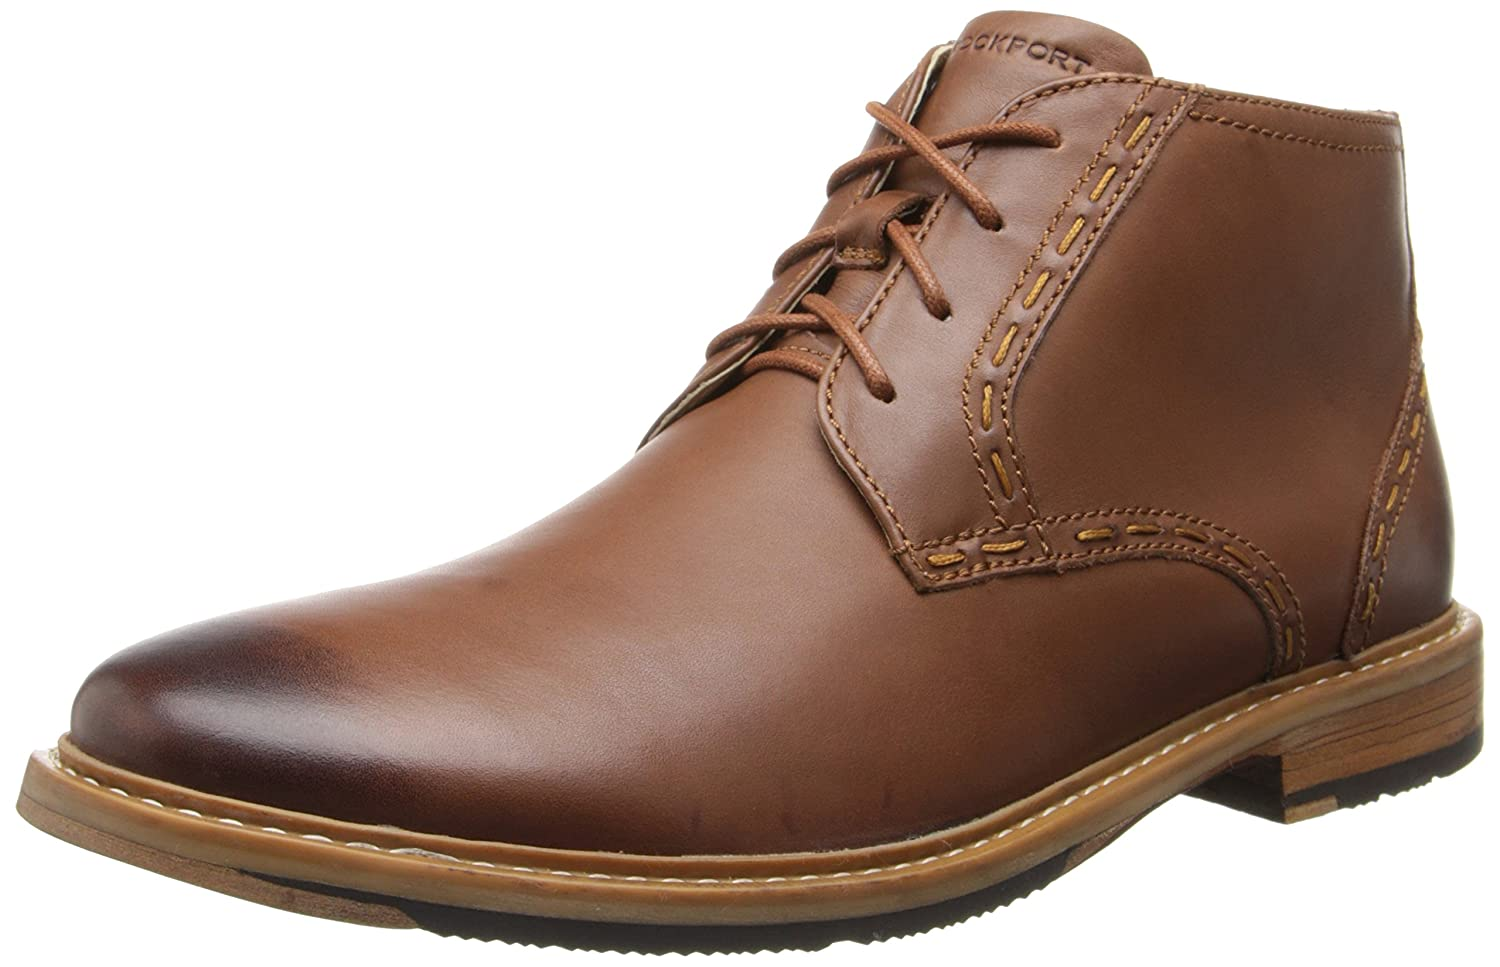 d359a9b54ea Rockport Ph Desert Boot Mens Tan Leather Fashion Ankle Boots Size UK ...